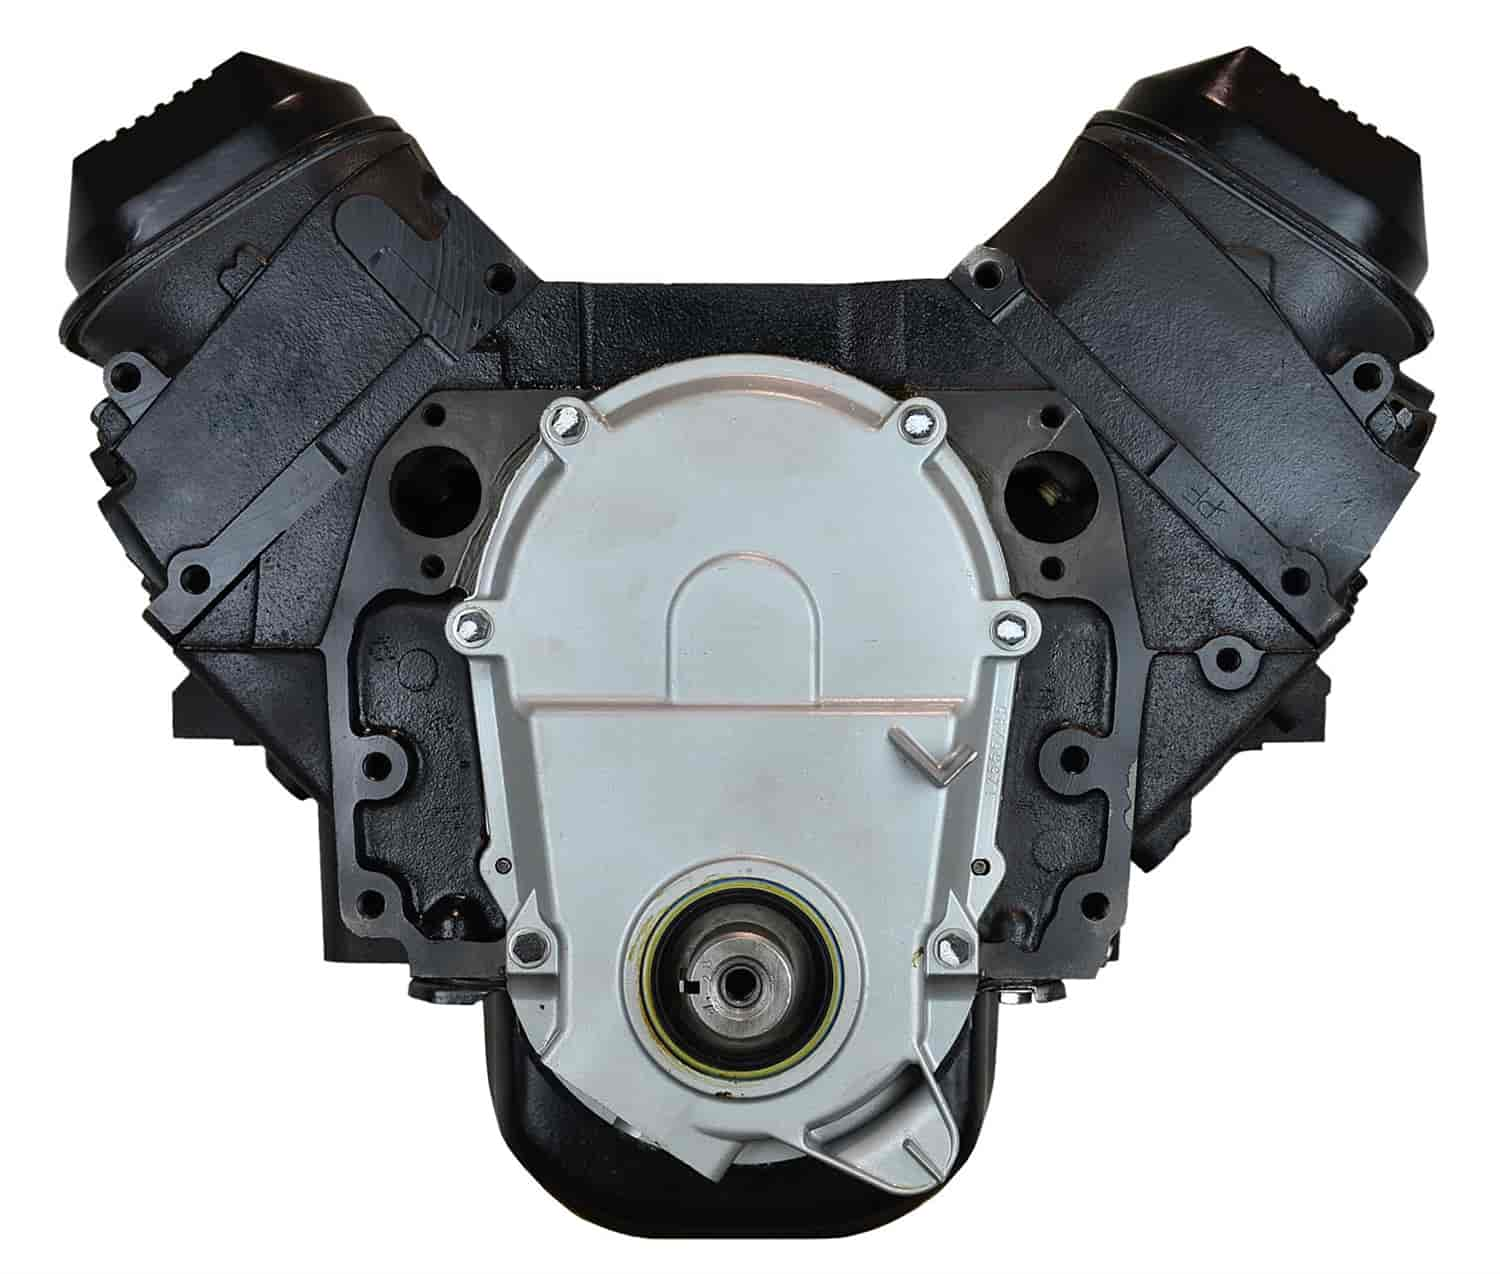 Chevy Tracker 2000 Remanufactured Complete: ATK Engines VCK2 Remanufactured Crate Engine 1996-2000